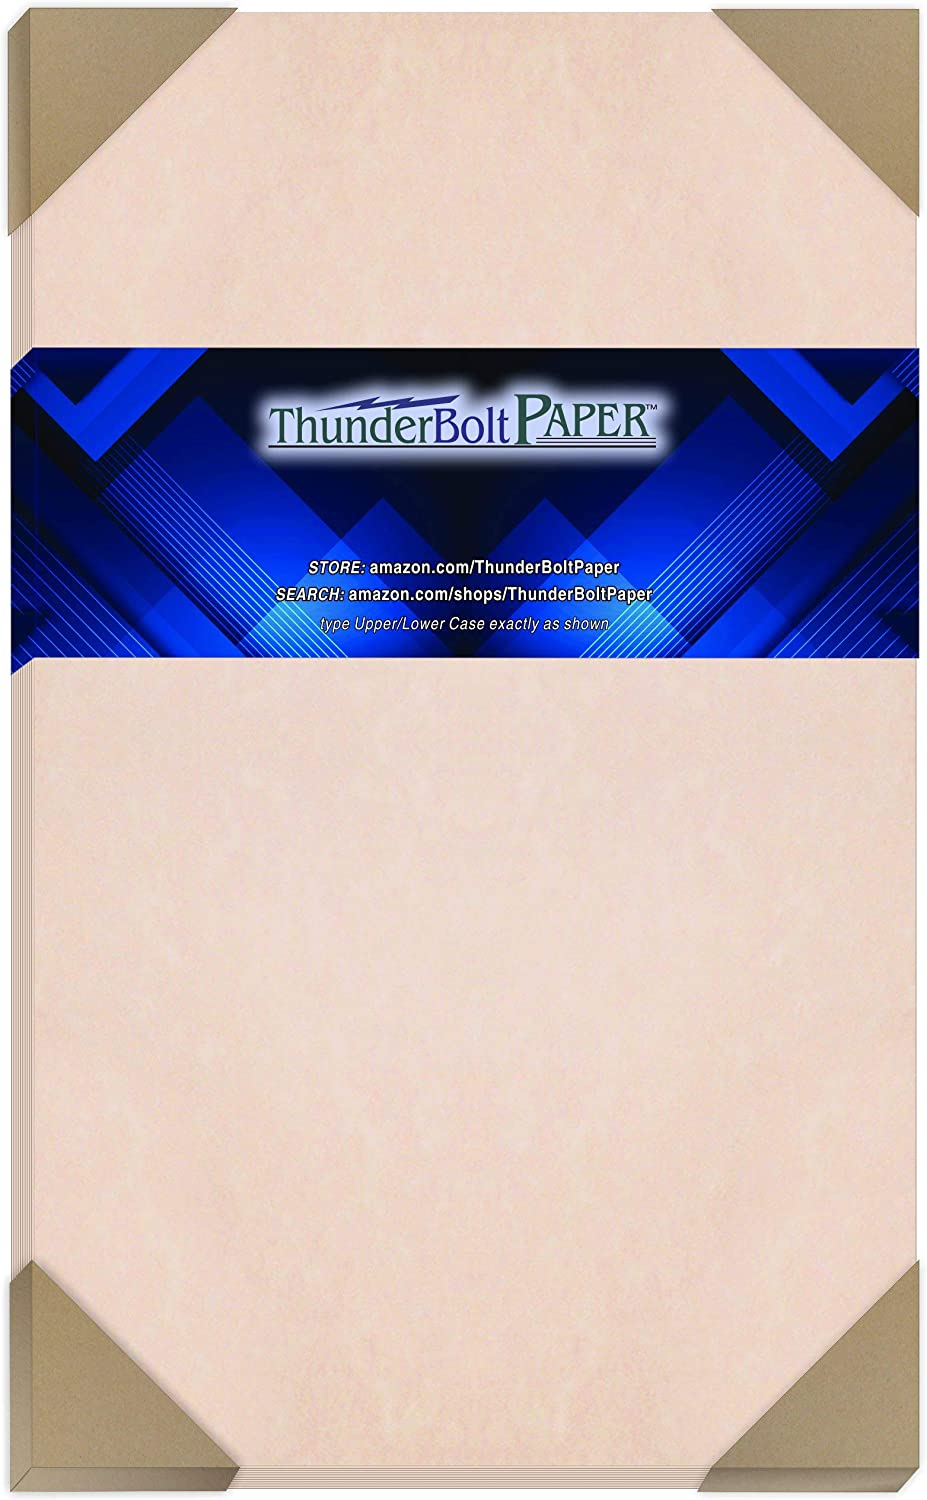 100 Pink Parchment 65lb Cover Weight Paper 8.5 X 14 Inches Cardstock Colored Sheets Legal Size -Printable Old Parchment Semblance